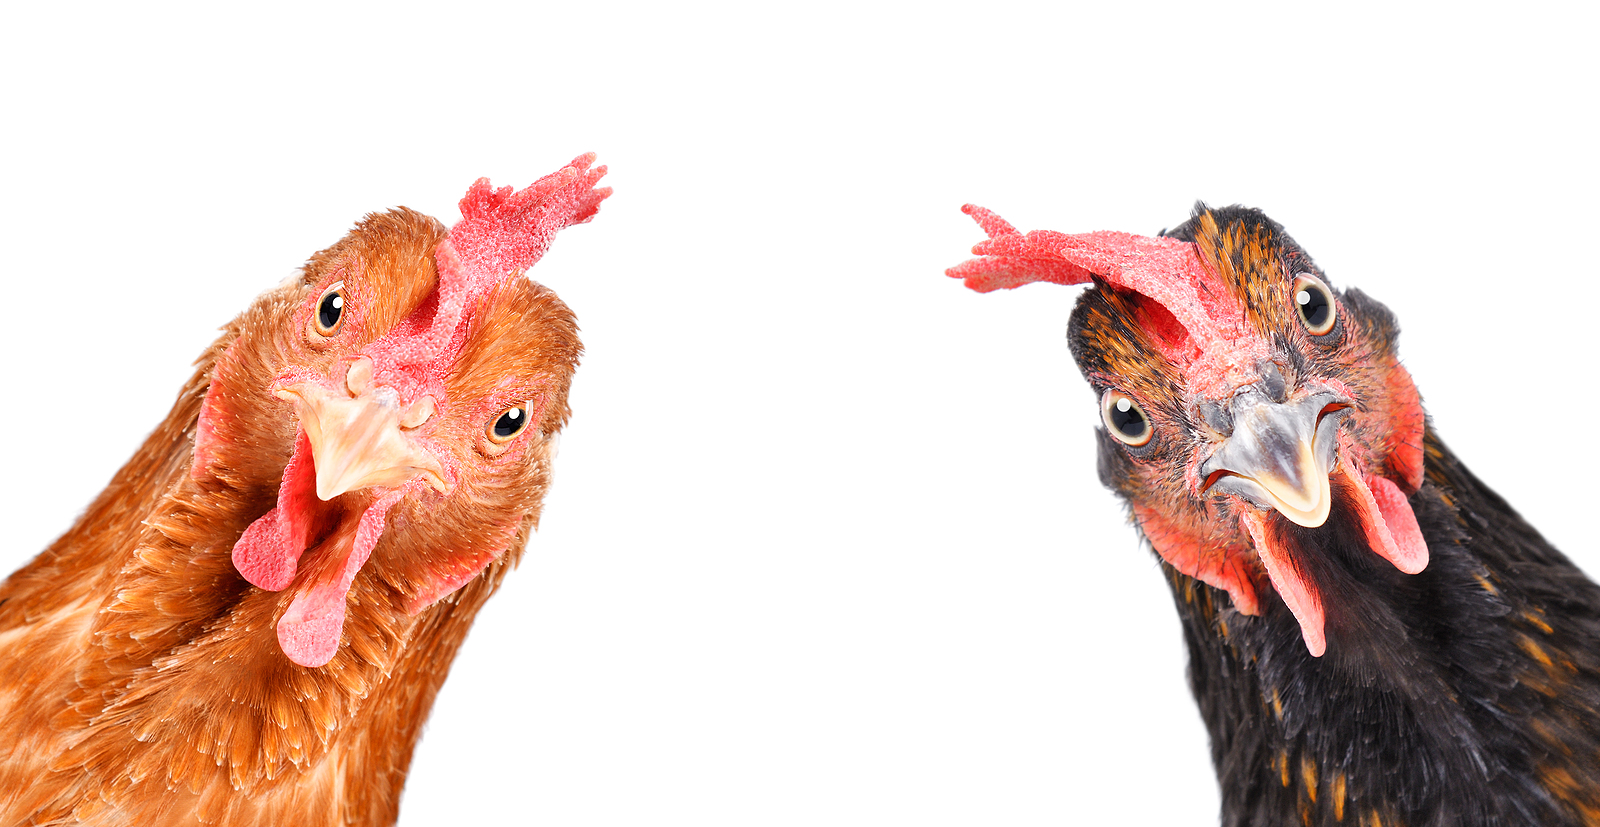 Portrait of chickens on a white background.